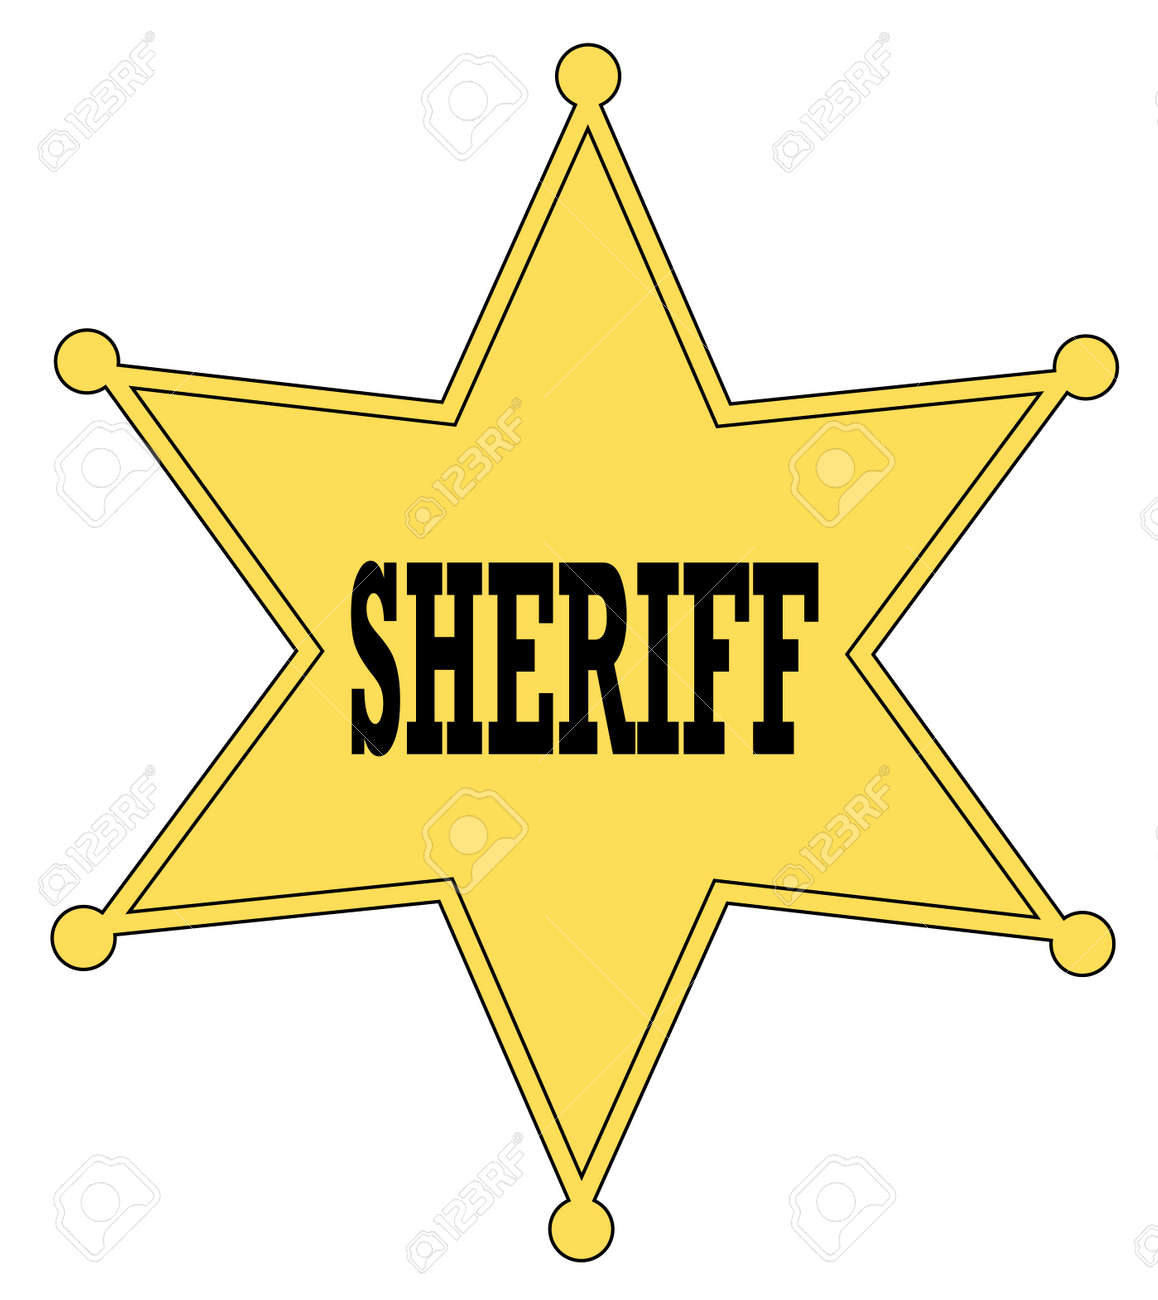 Sheriff badge template crafts and creations by dancing cowgirl 5 670 sheriff badge cliparts stock vector and royalty free pronofoot35fo Images